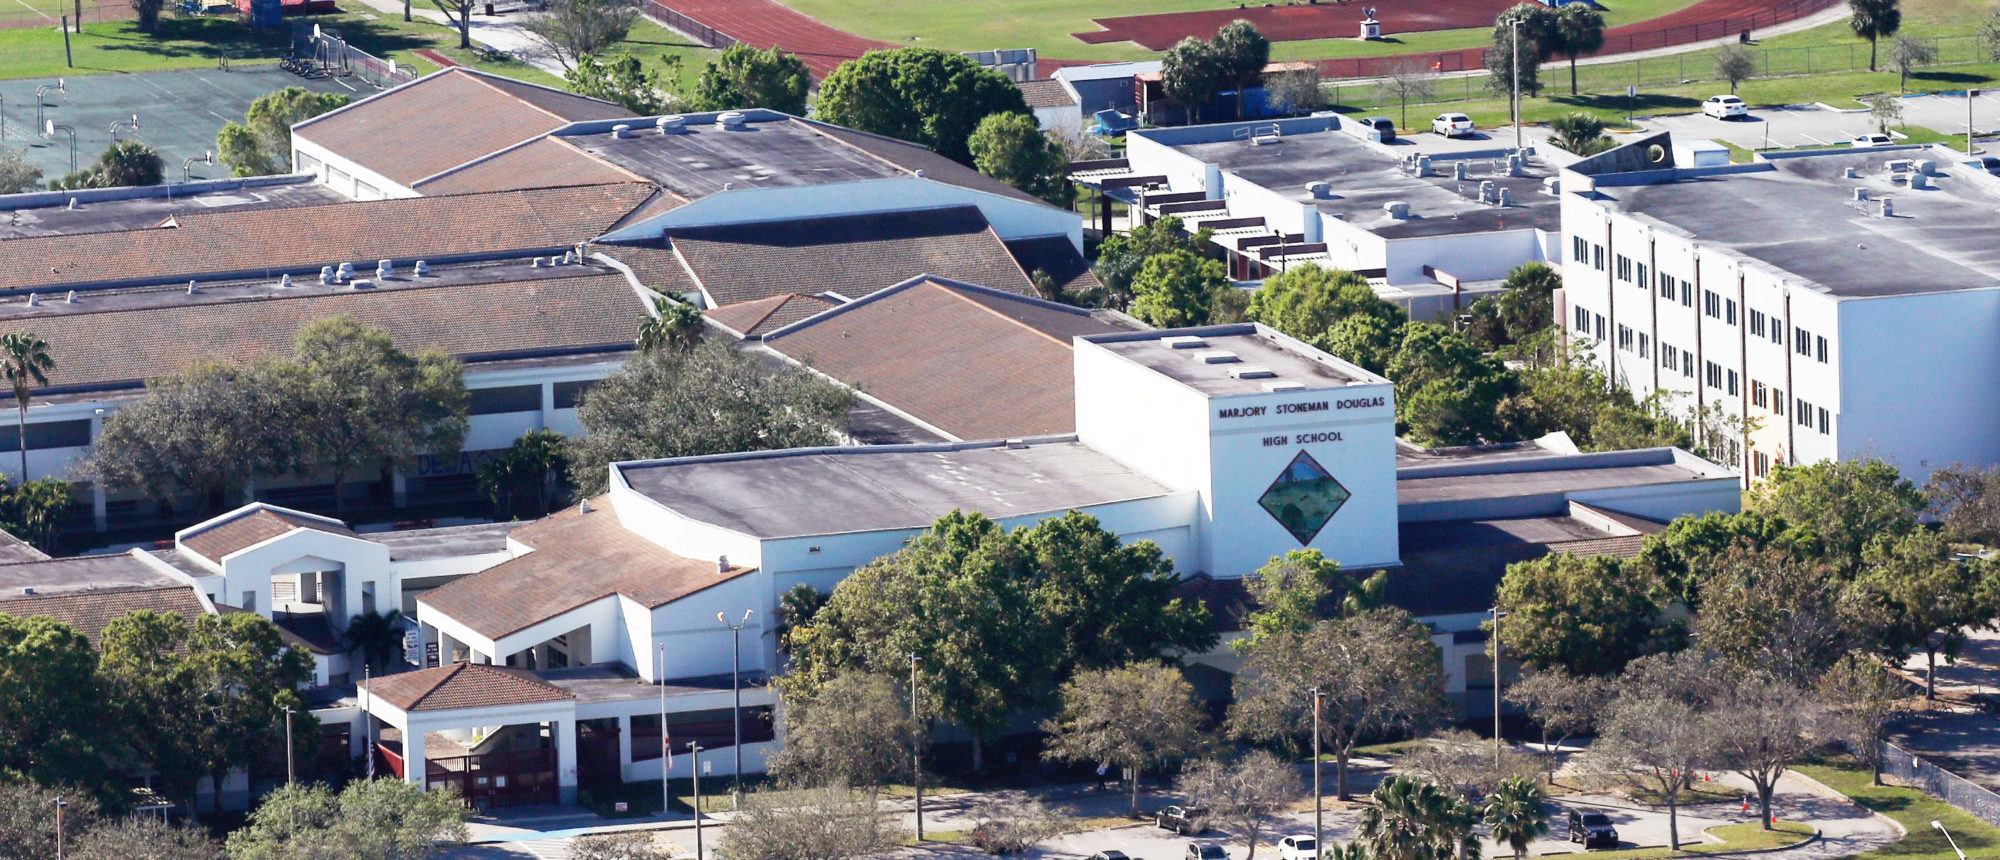 FILE PHOTO: An aerial view shows Marjory Stoneman Douglas High School following a mass shooting in Parkland, Florida, February 16, 2018. REUTERS/Carlos Garcia Rawlins/File Photo